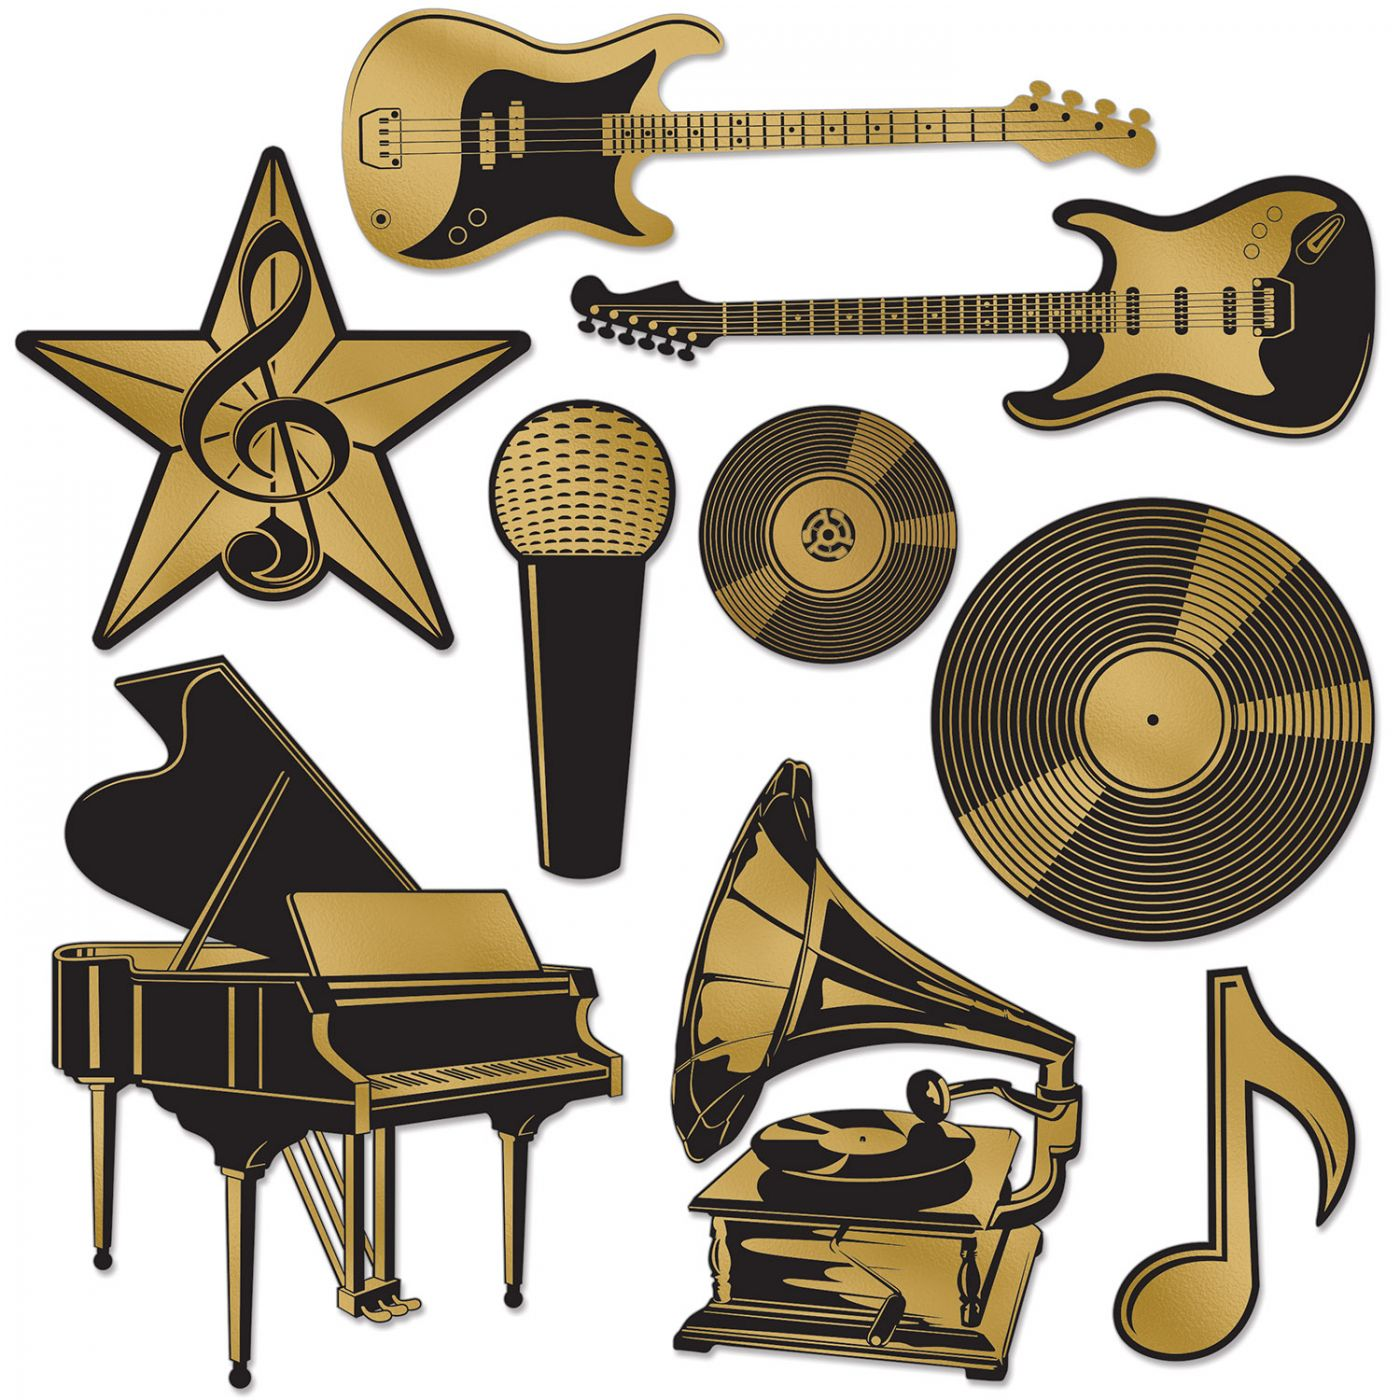 Foil Music Award Cutouts image